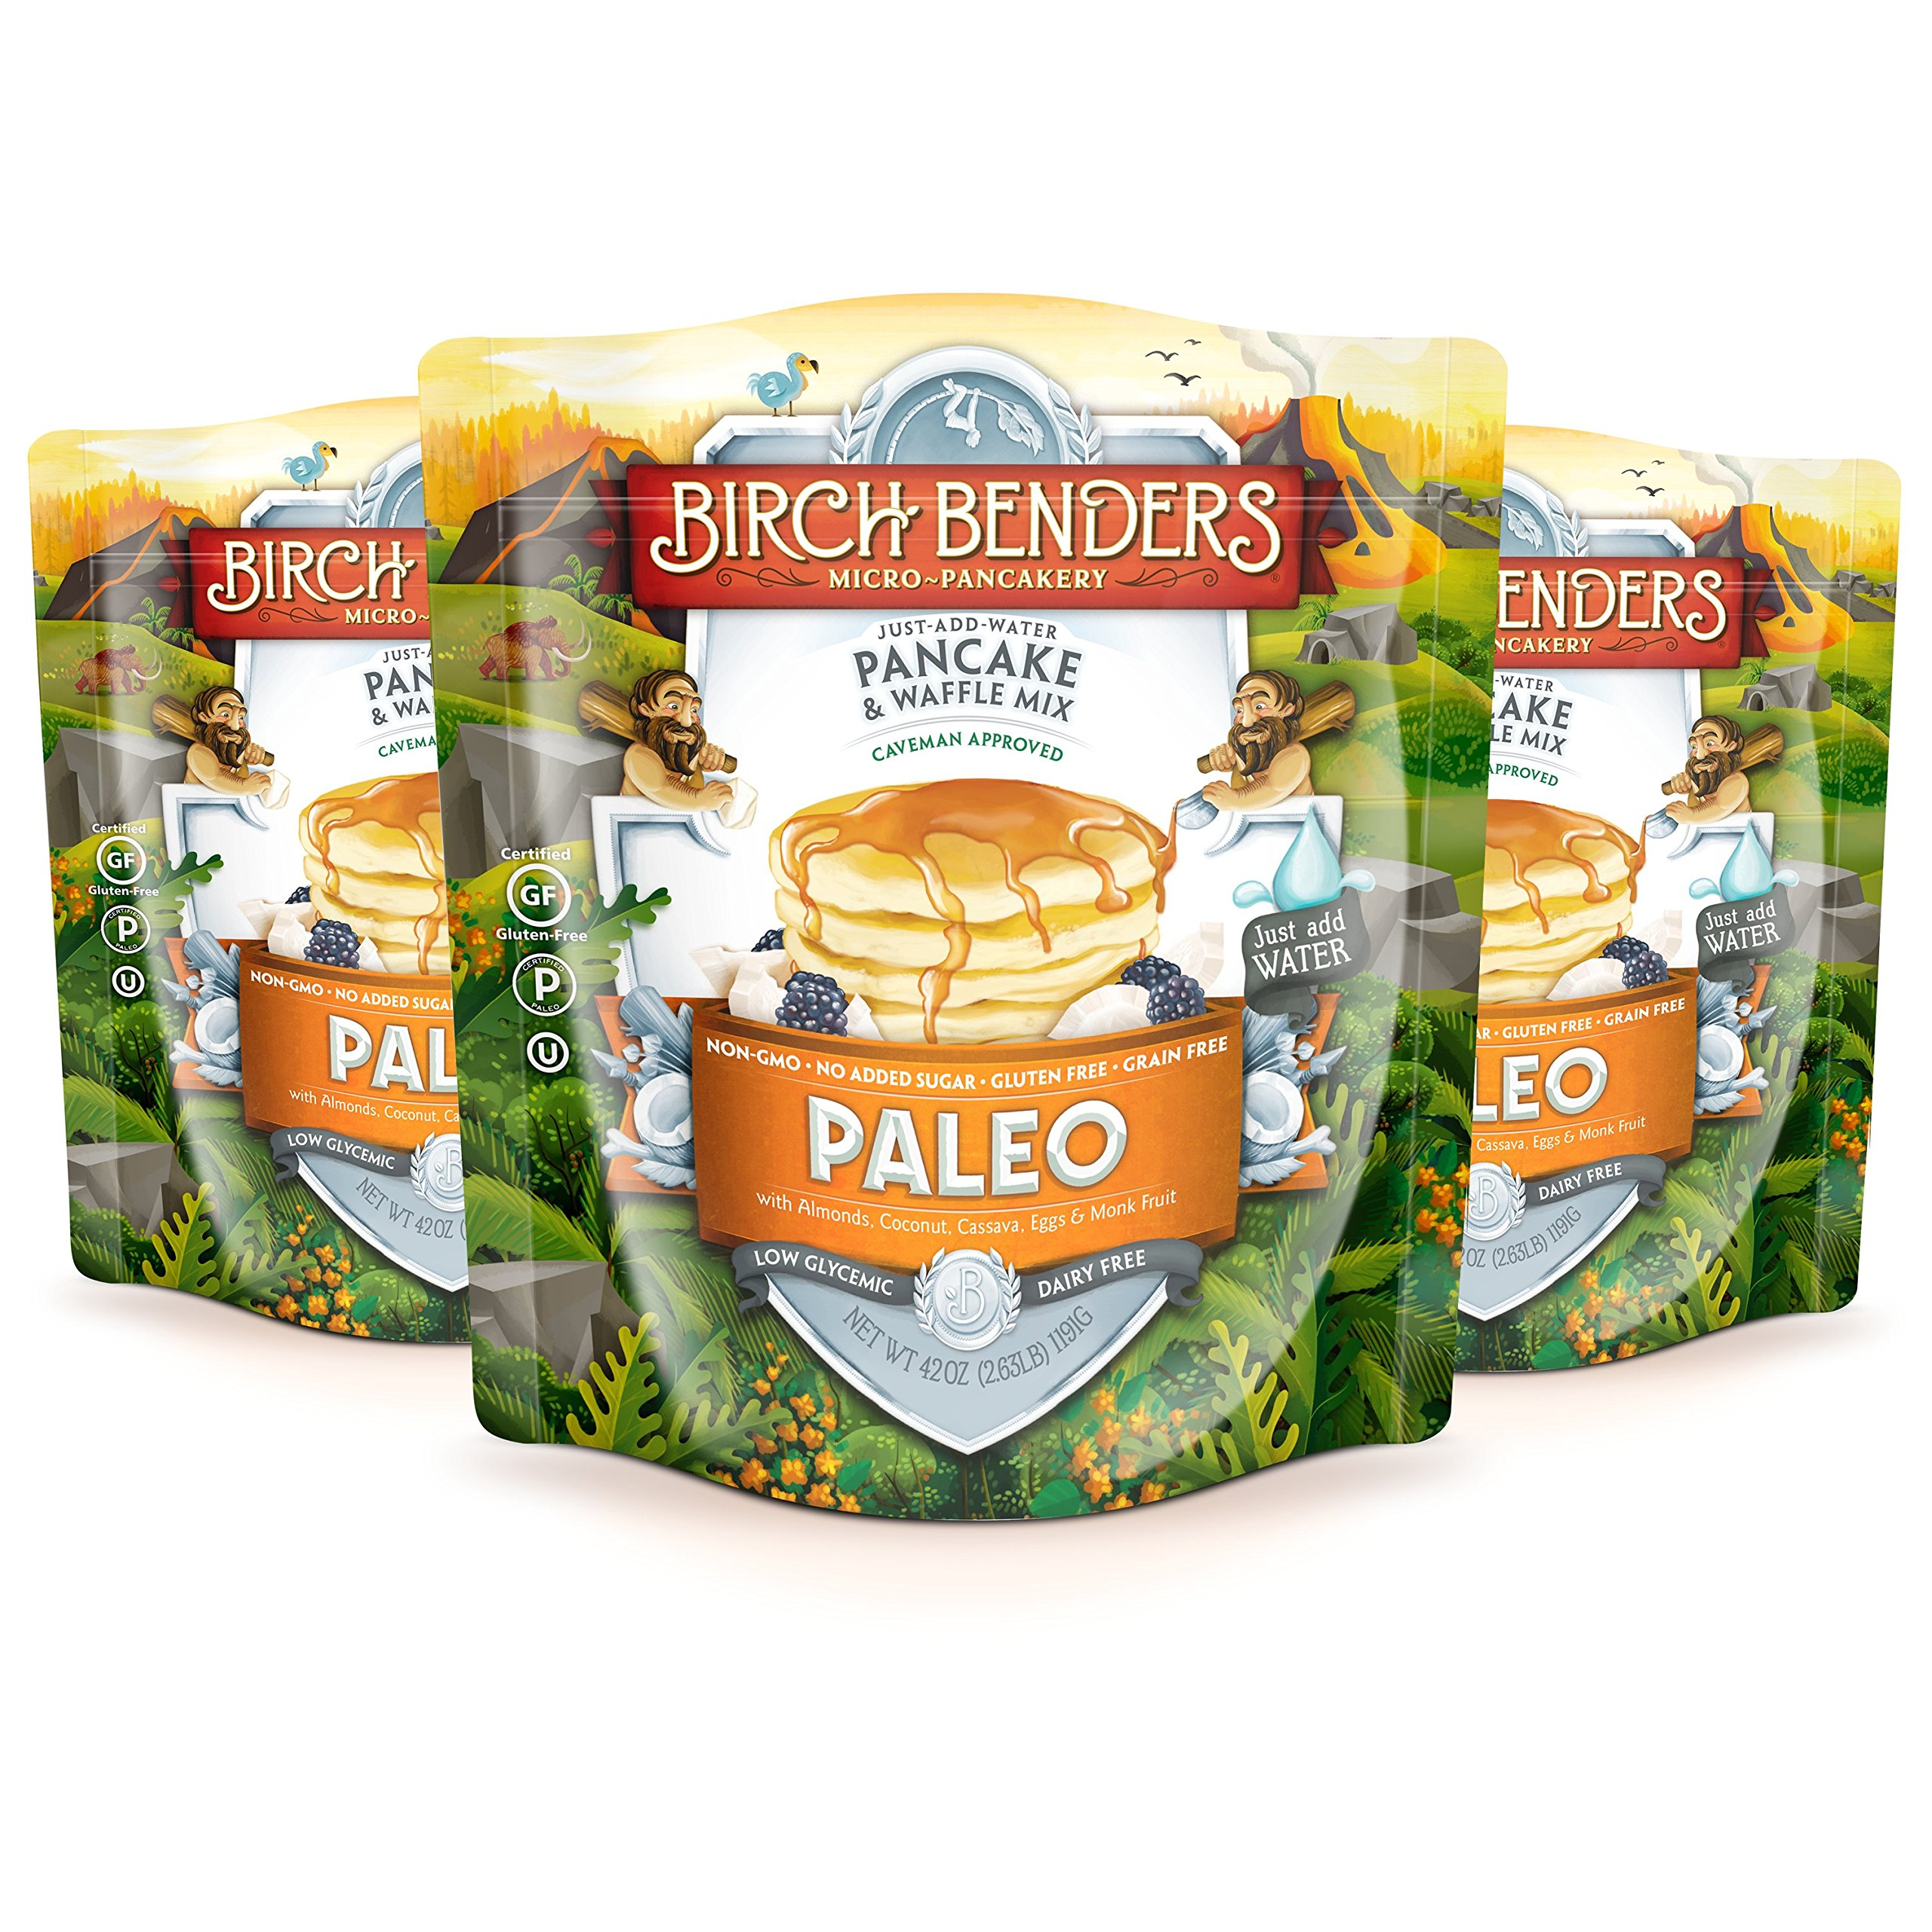 Paleo Pancake and Waffle Mix by Birch Benders, Low-Carb, High Protein, High Fiber, Gluten-free, Low Glycemic, Prebiotic, Made with Cassava, Coconut and Almond Flour, 3-pack (42oz each) by Birch Benders